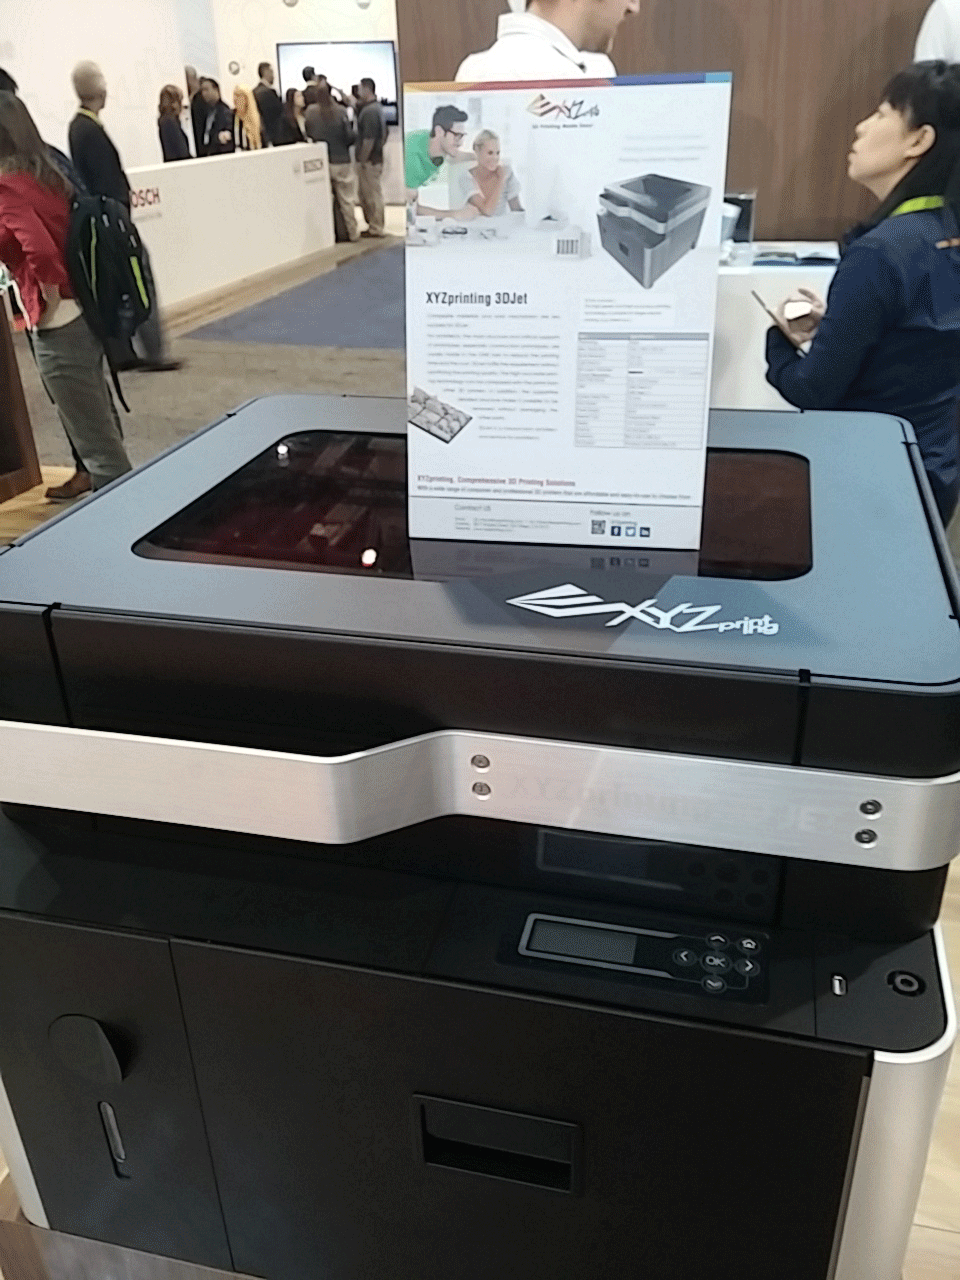 The 3D Jet is being showcased at CES